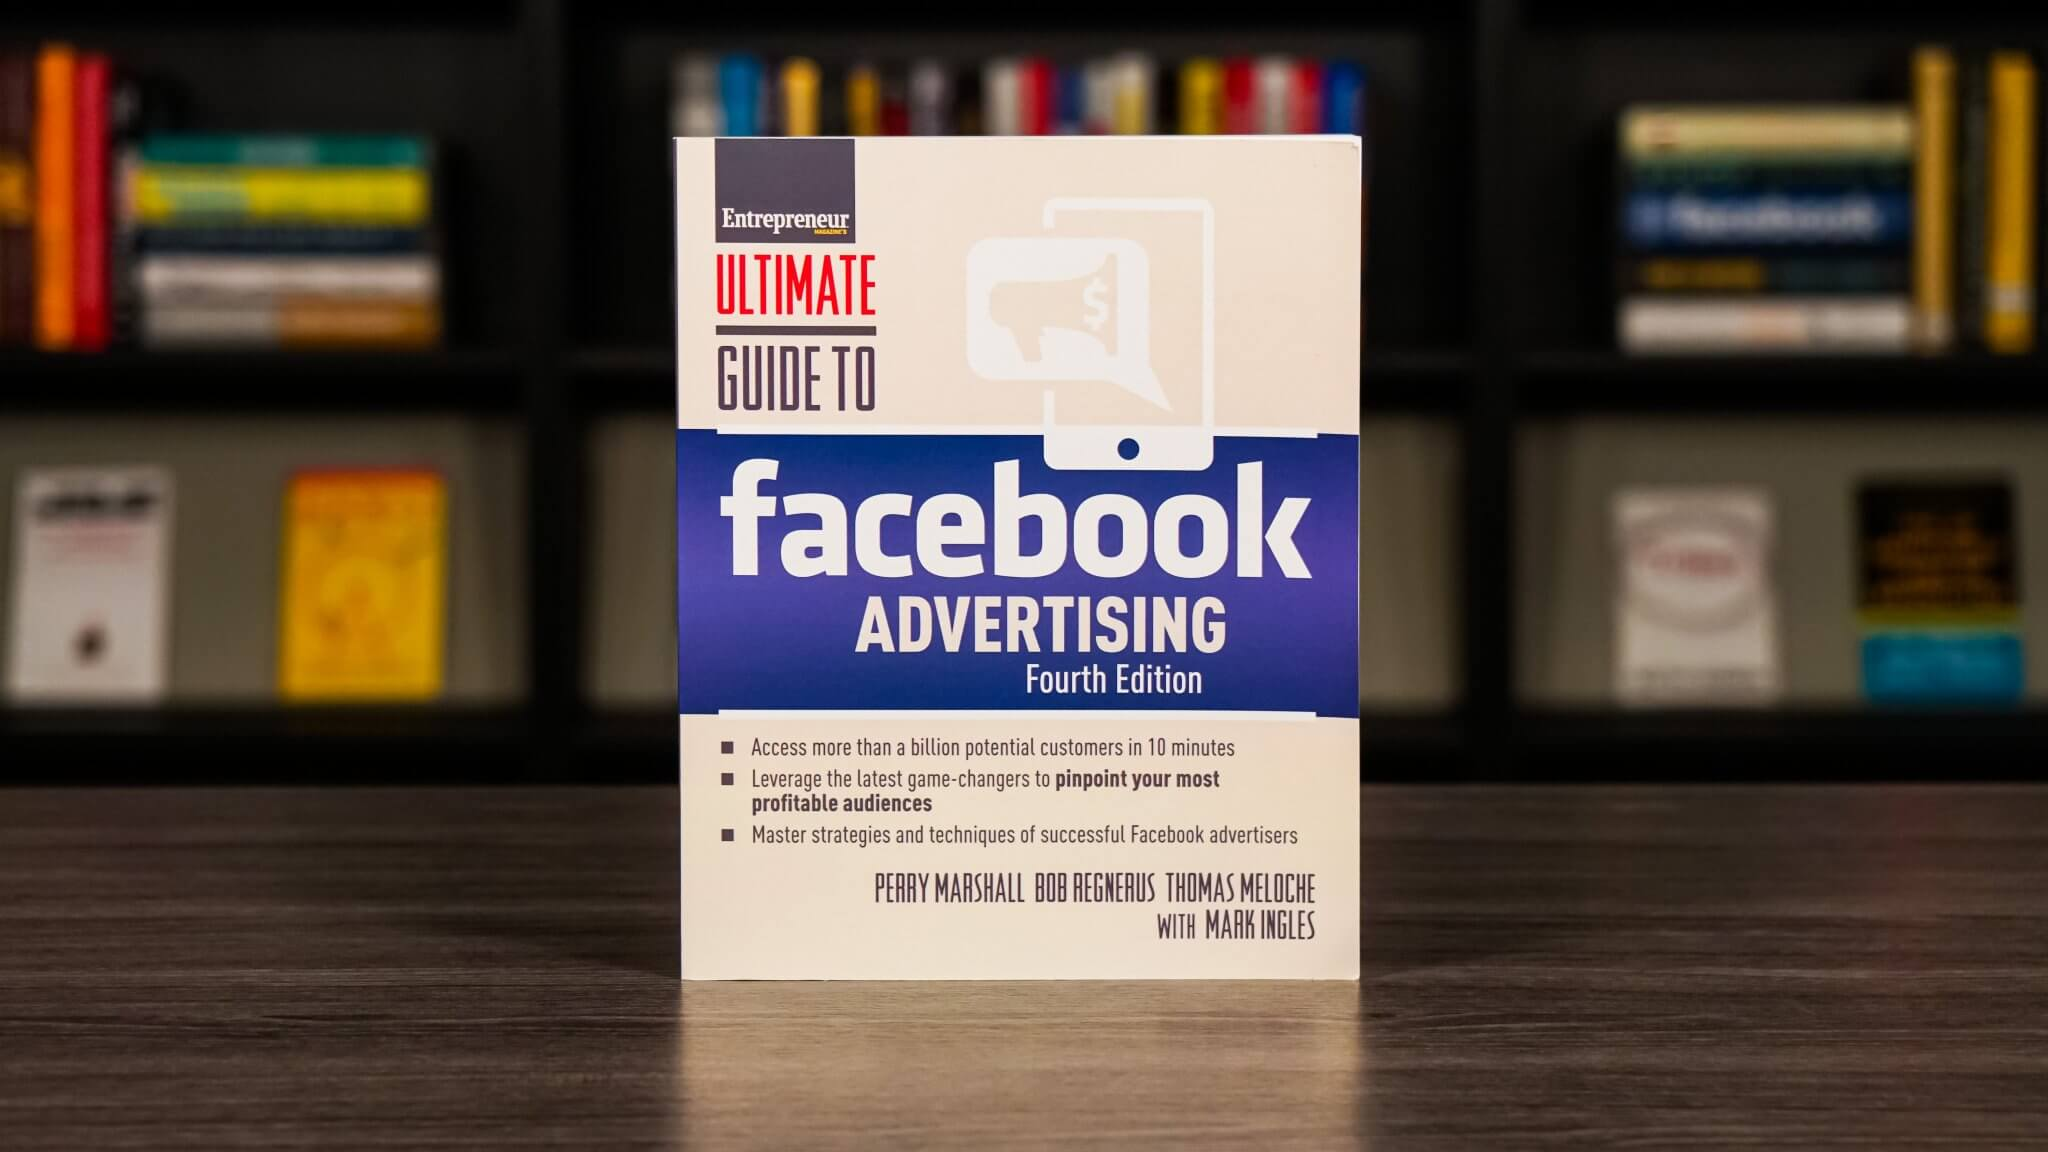 The Ultimate Guide To Facebook Advertising Book Cover